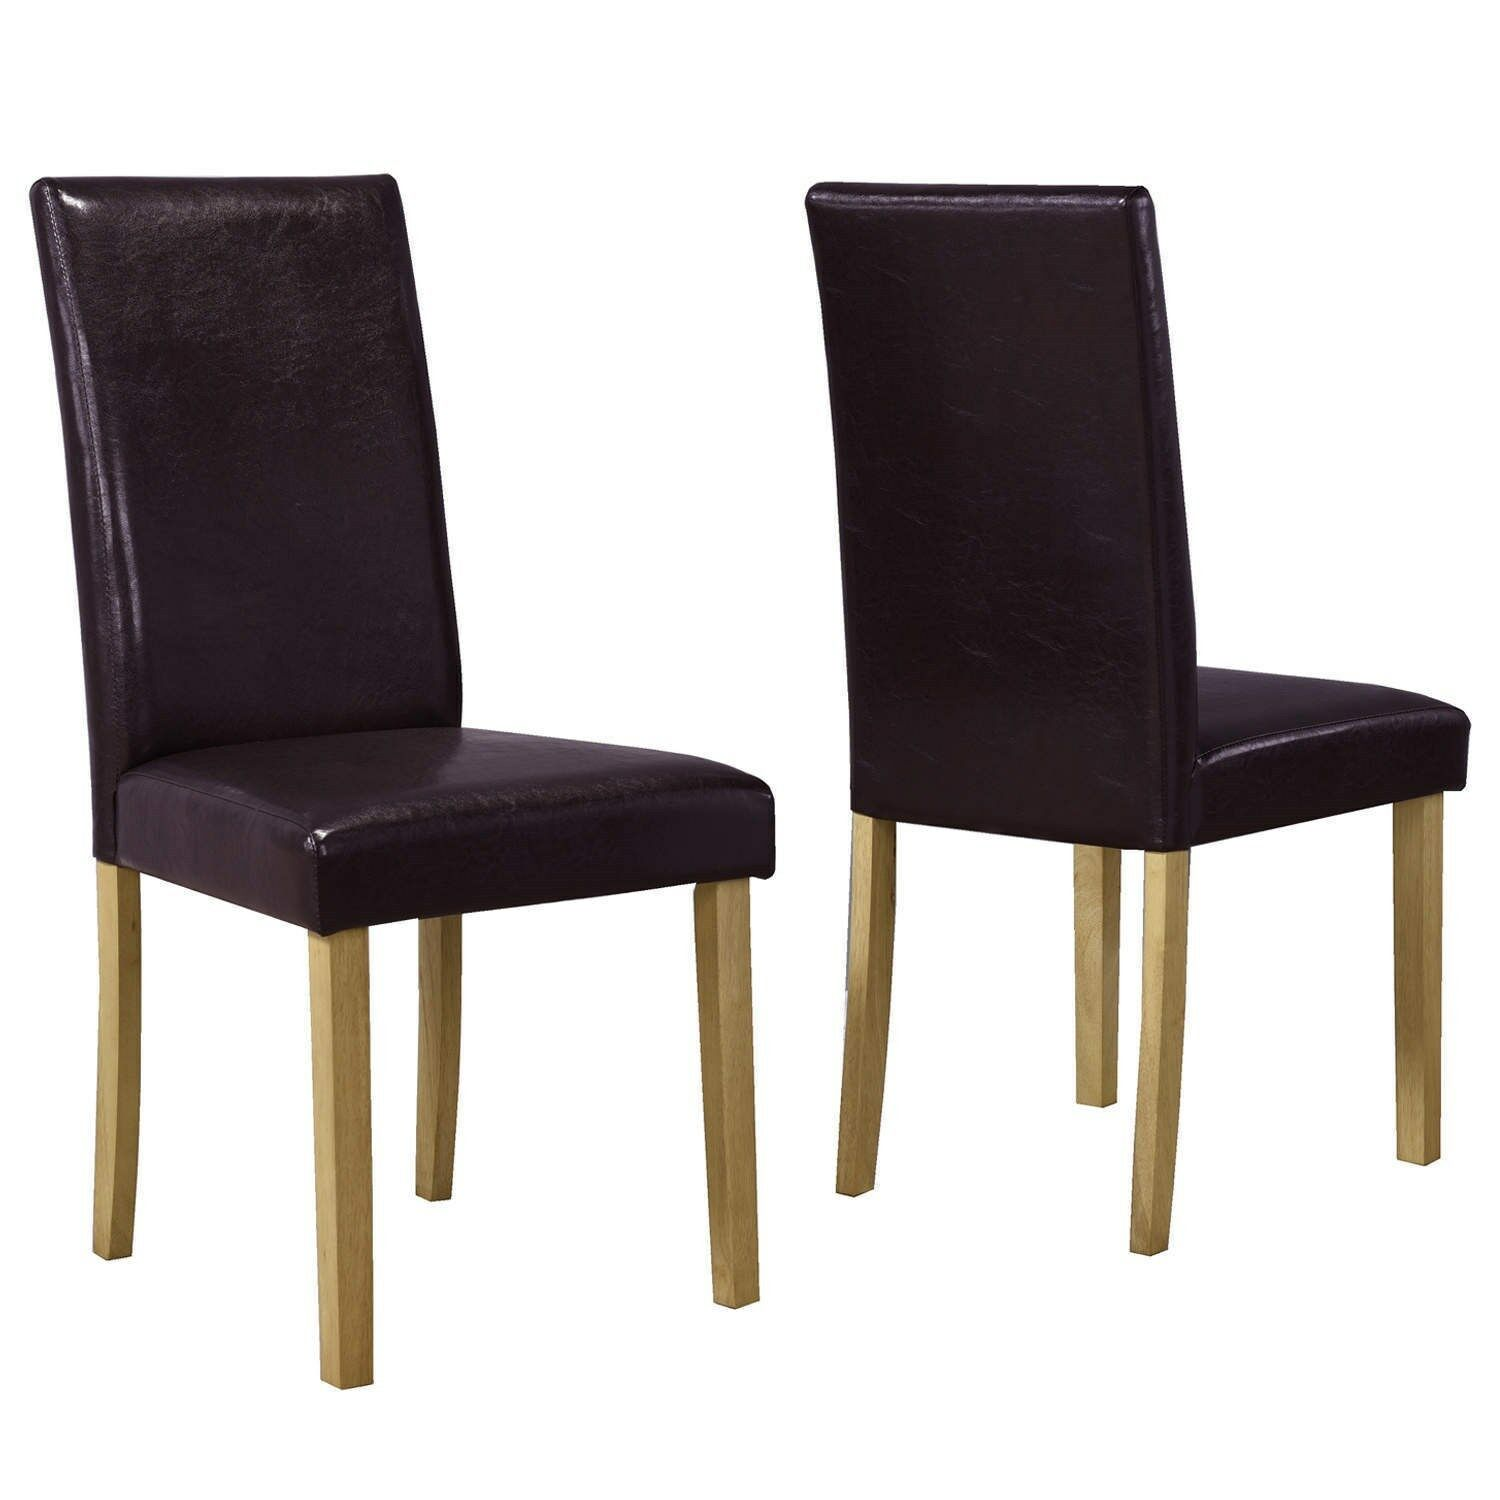 Pair of brown faux leather dining chairs solid oak 59 for Brown leather dining chairs